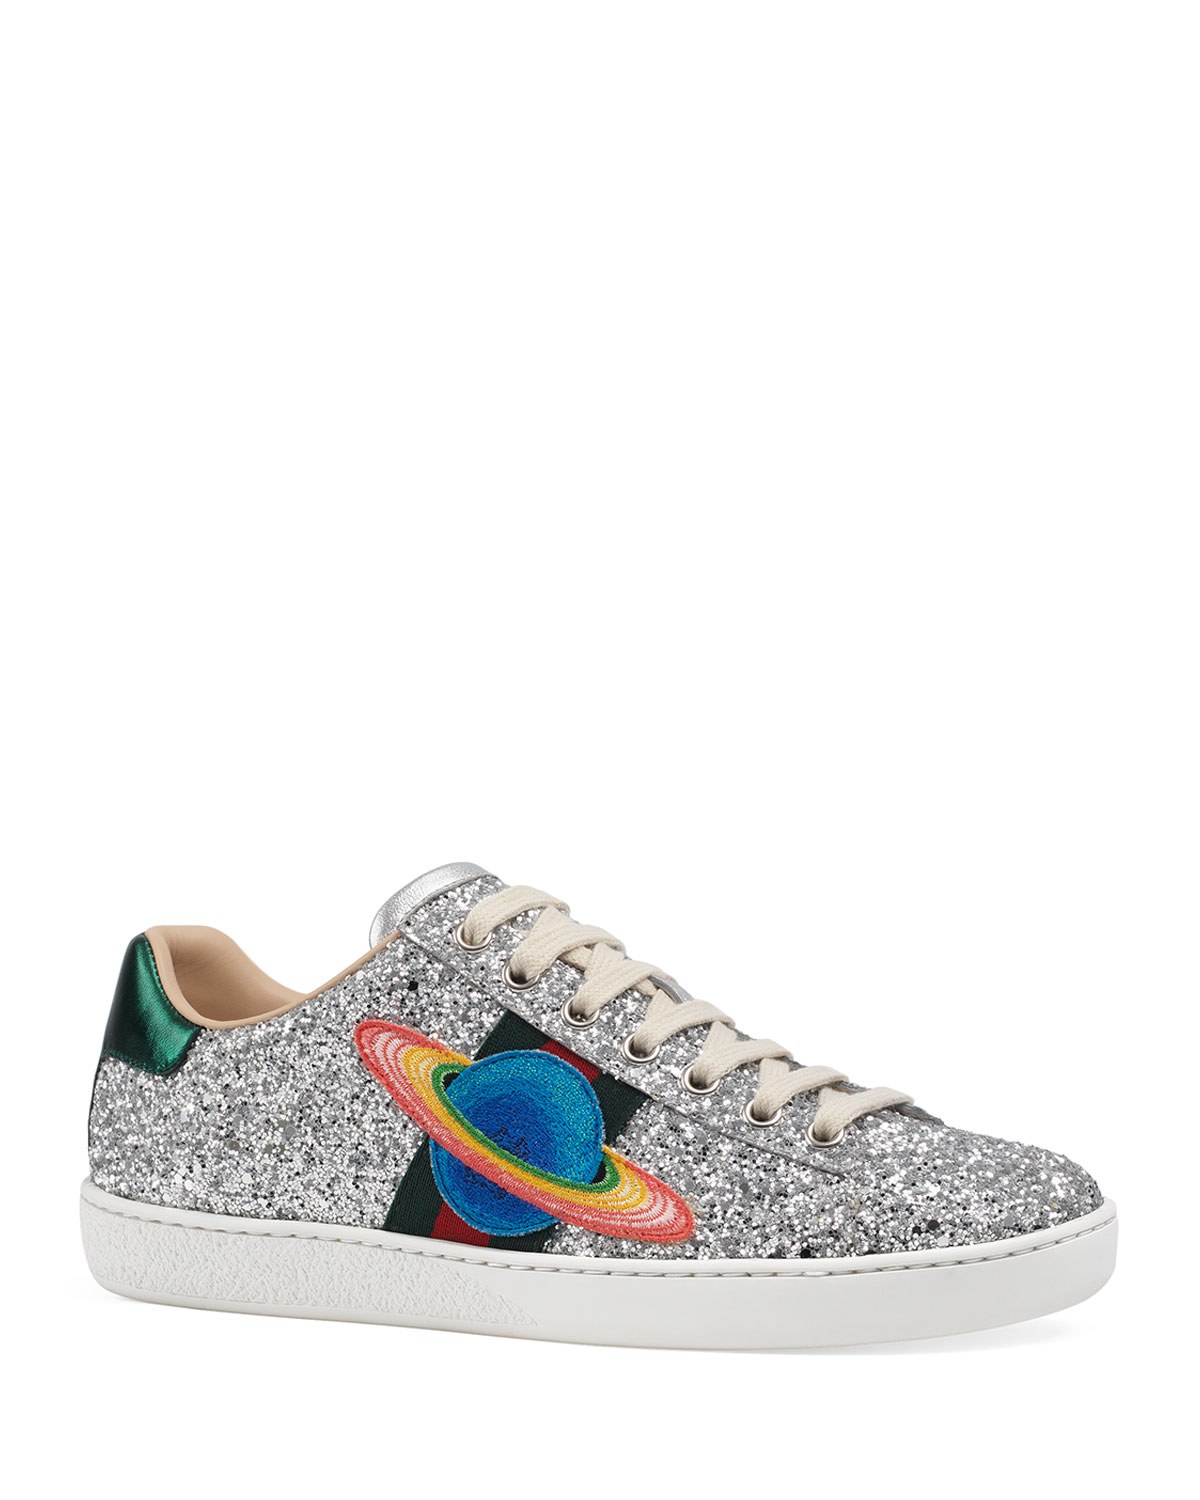 03fa5fbccf09 Gucci New Ace Saturn Glitter Trainer